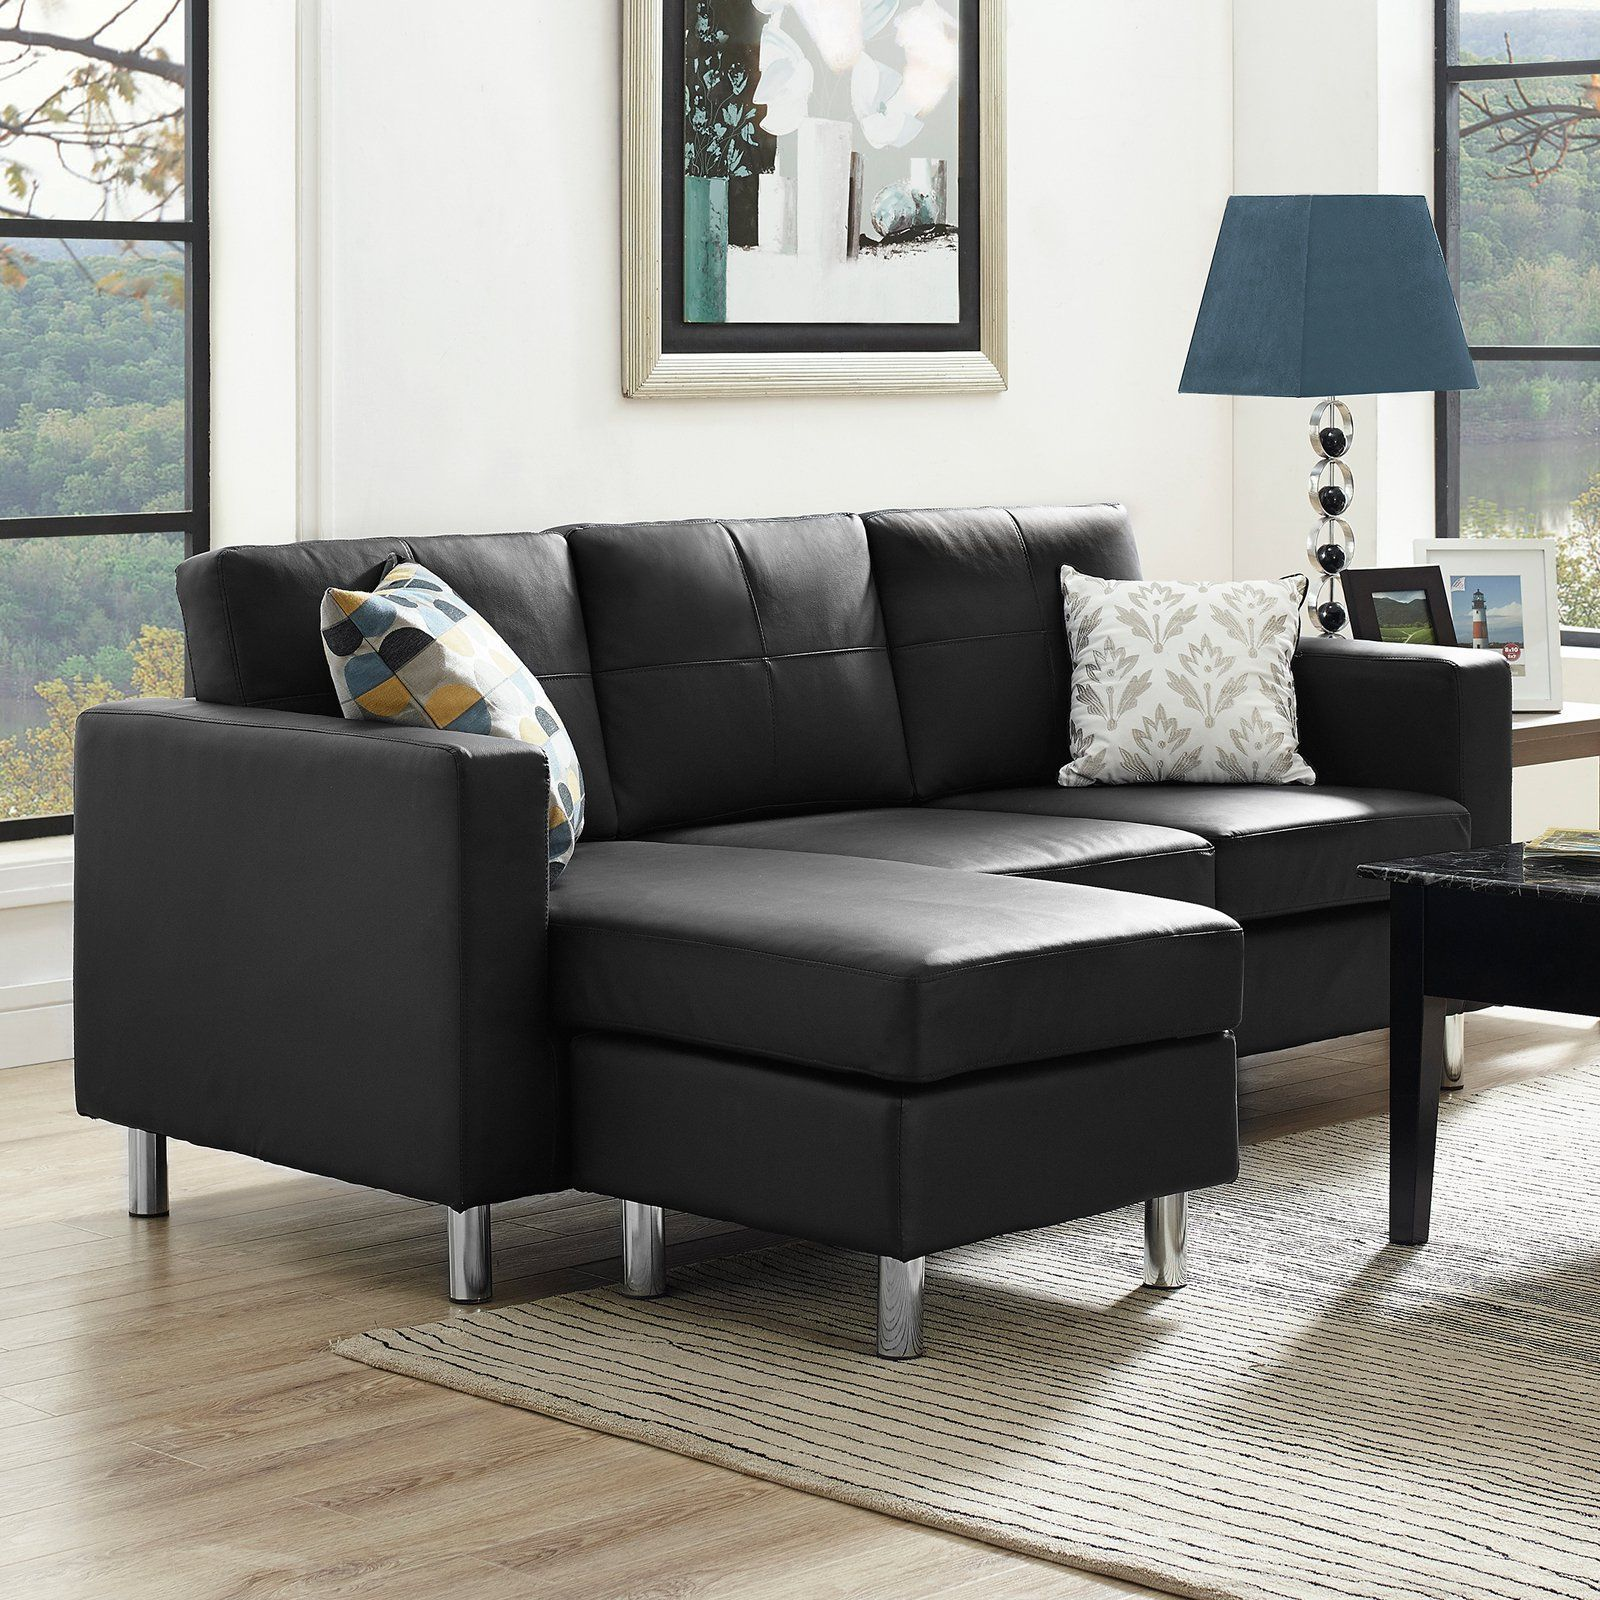 Dorel Living Small Spaces Configurable Sectional Sofa Black Small Sectional Sofa Cheap Living Room Sets Sofas For Small Spaces